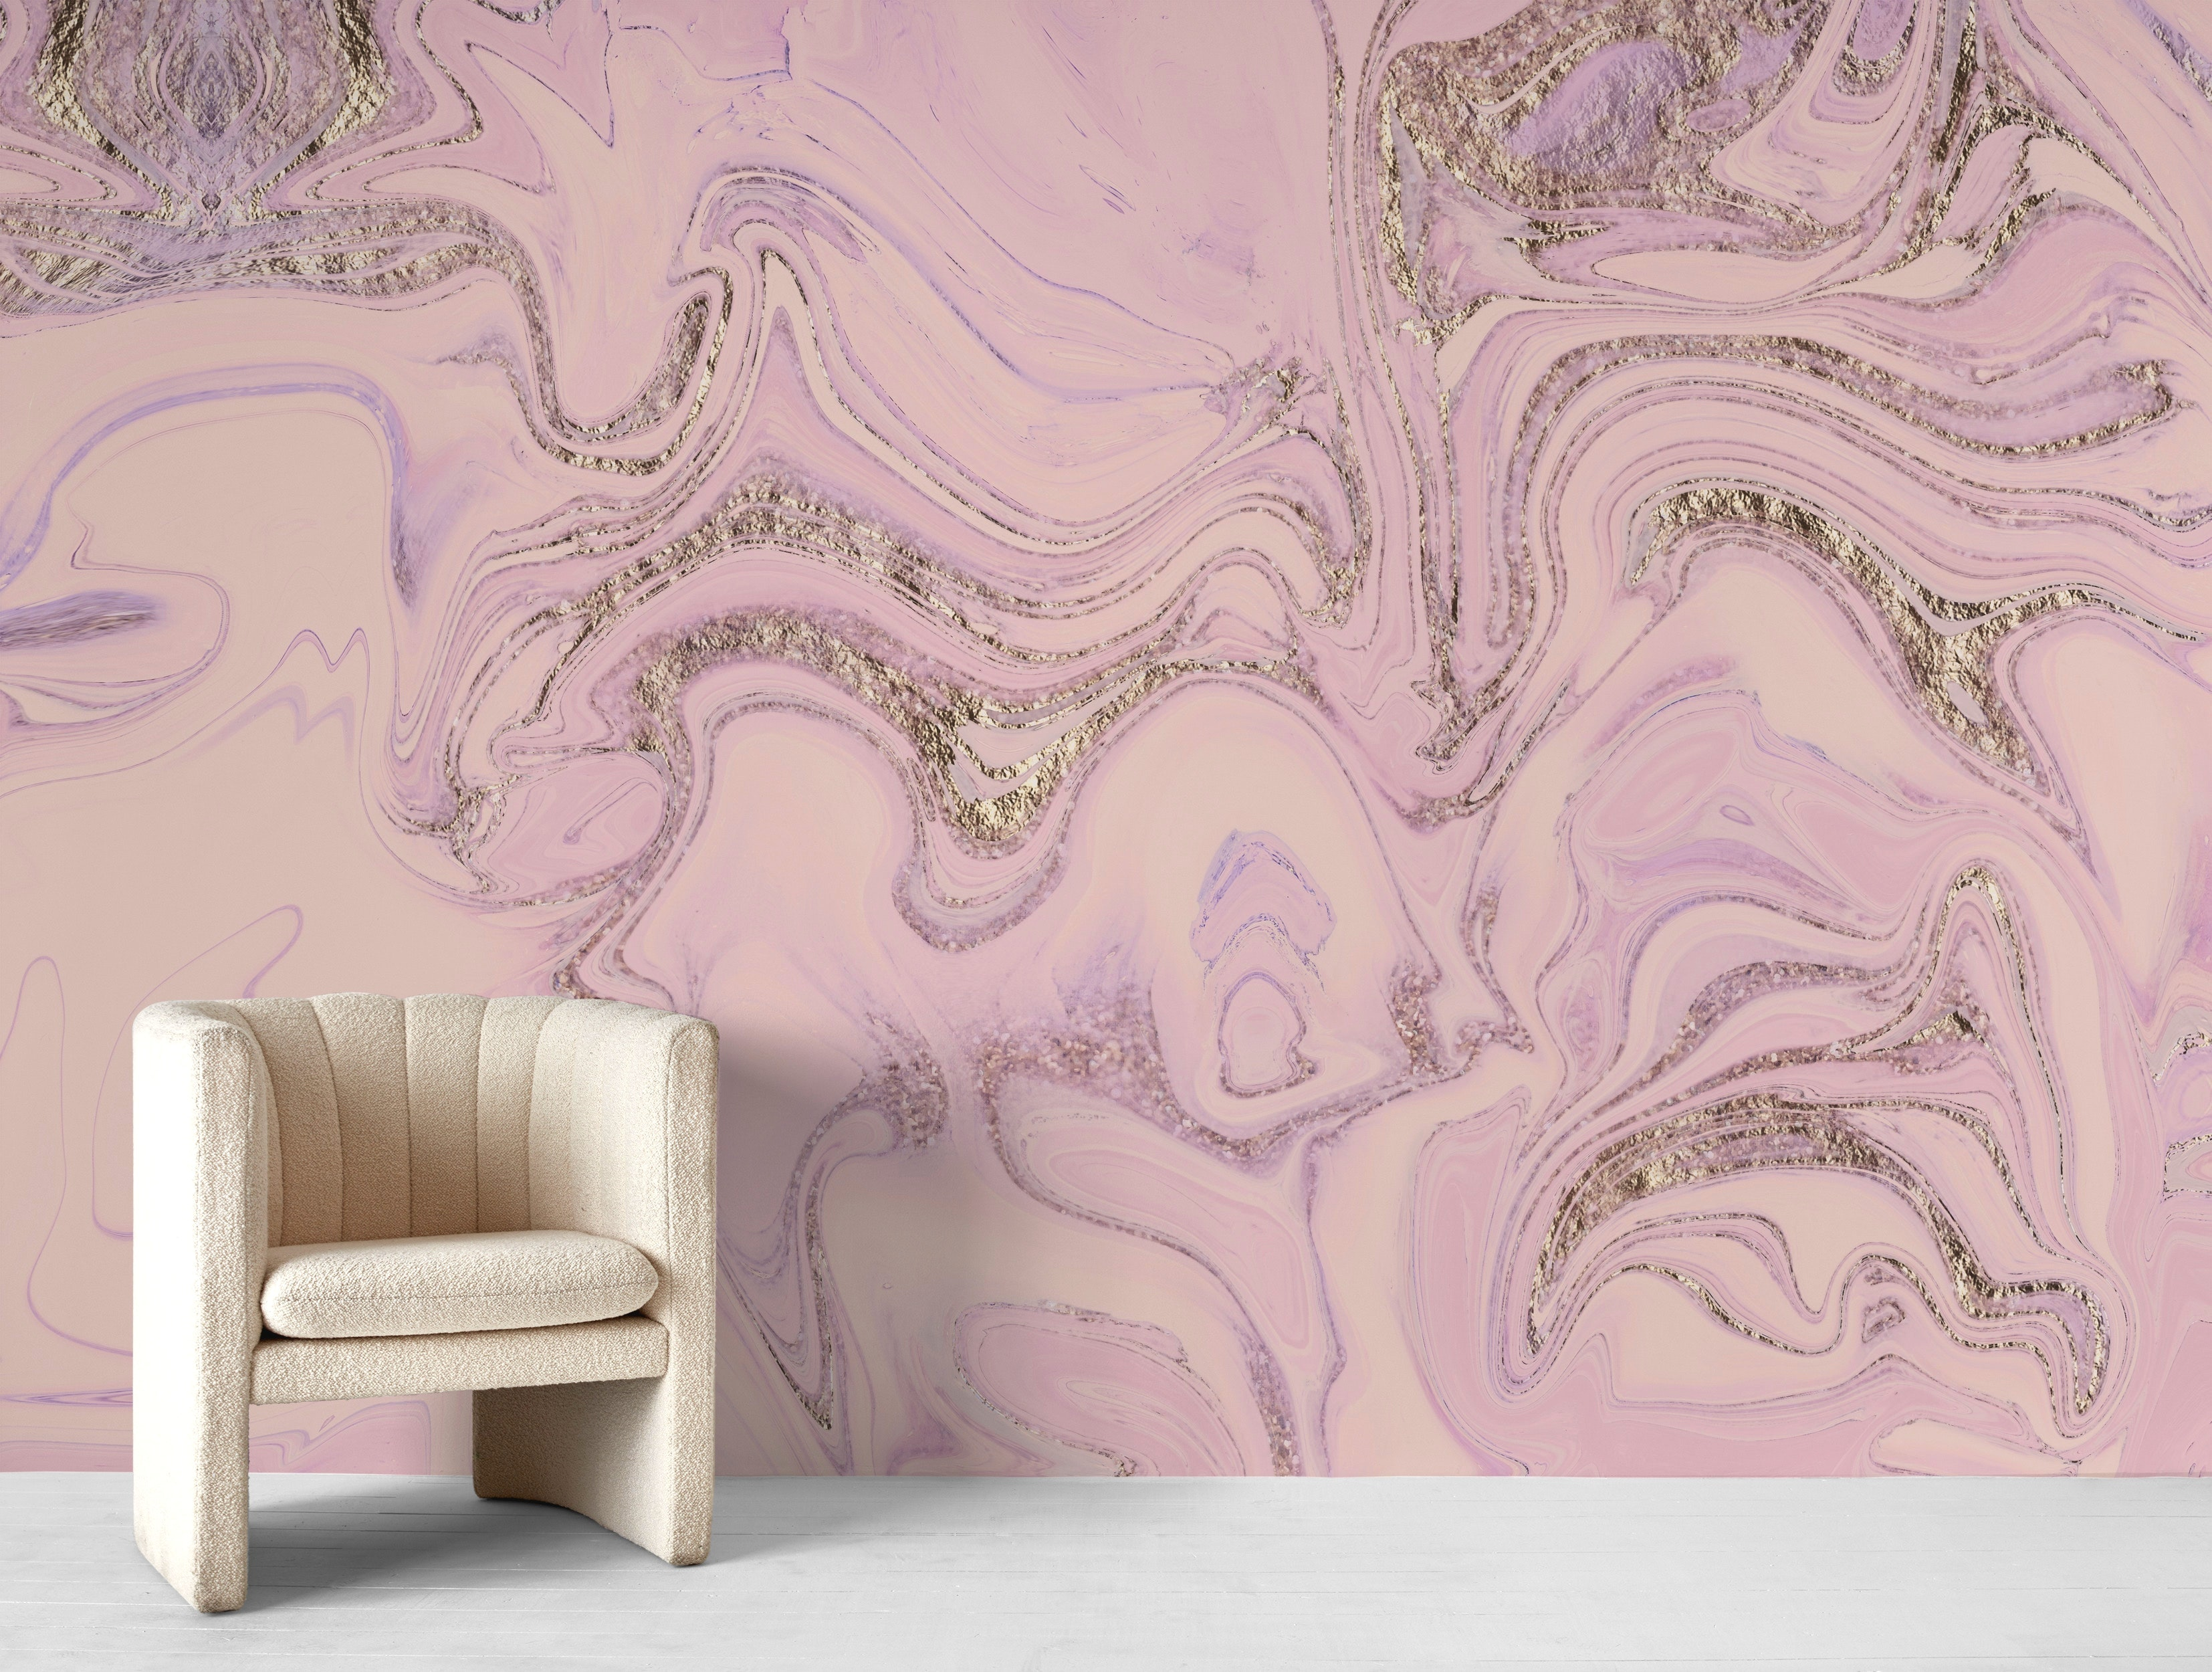 Buy Soft Pink Glitter Marble Wallpaper Free Us Shipping At Happywall Com